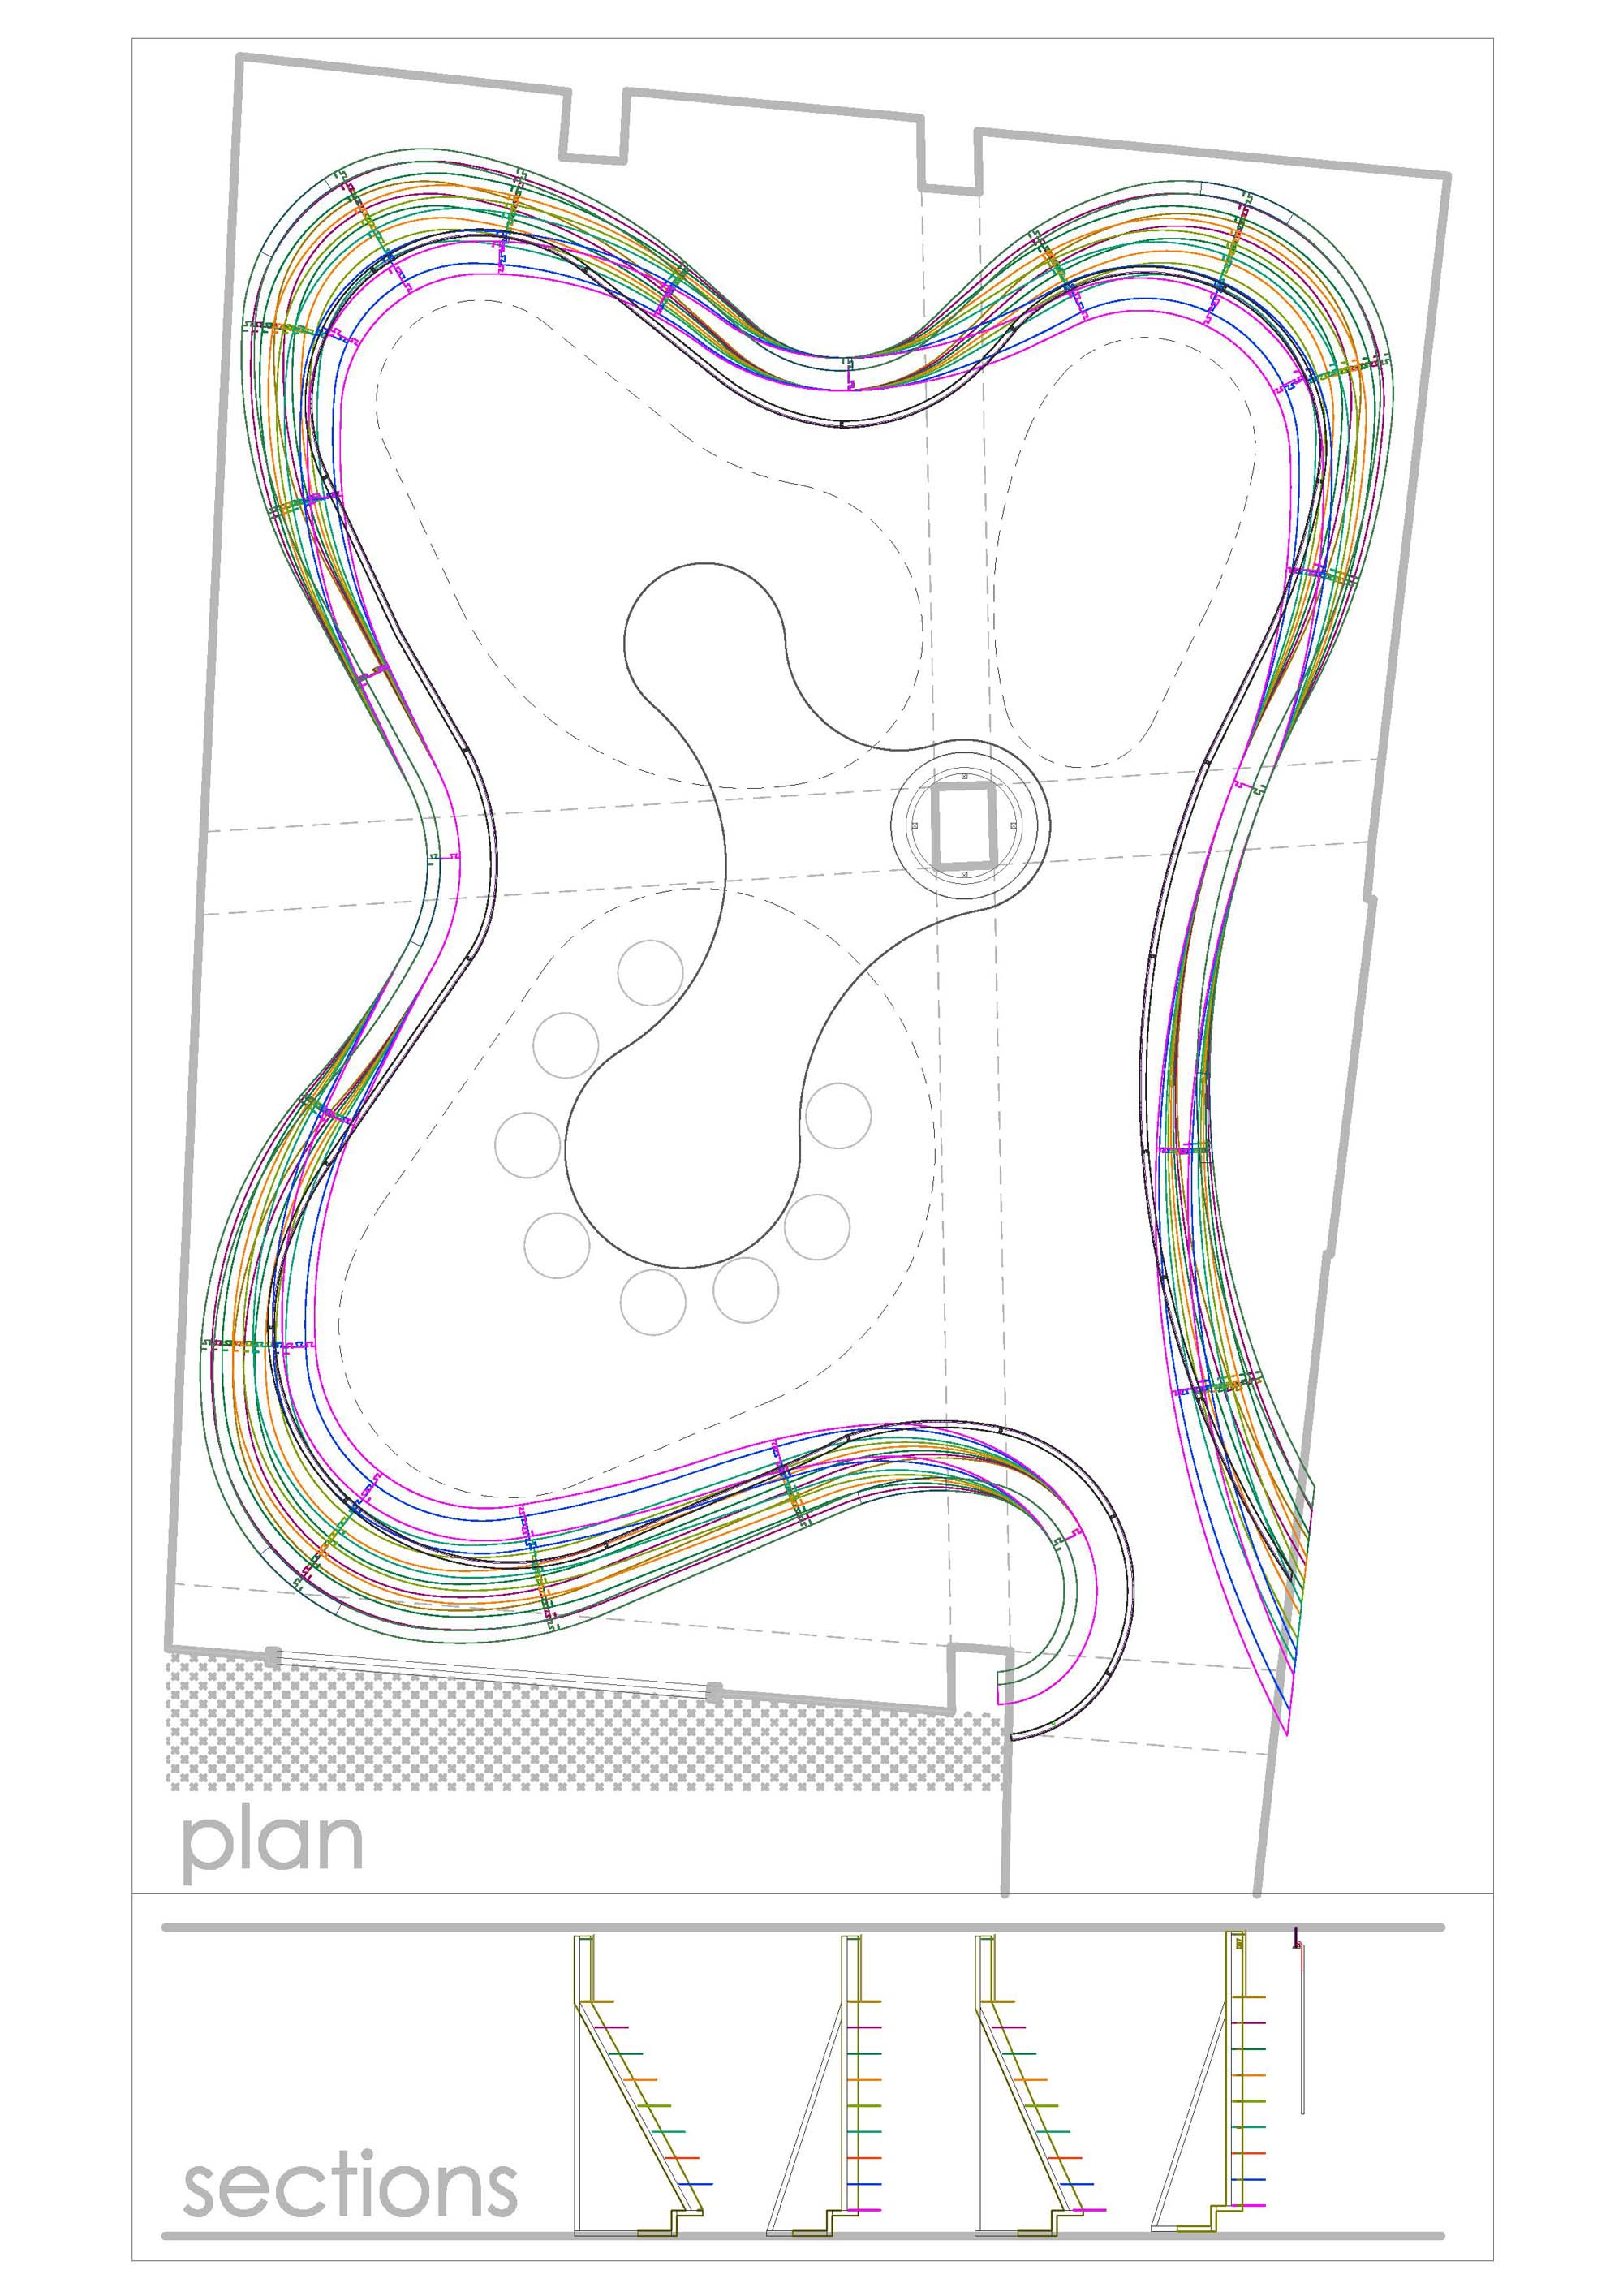 performance showroom-plan-sections-page-001.jpg